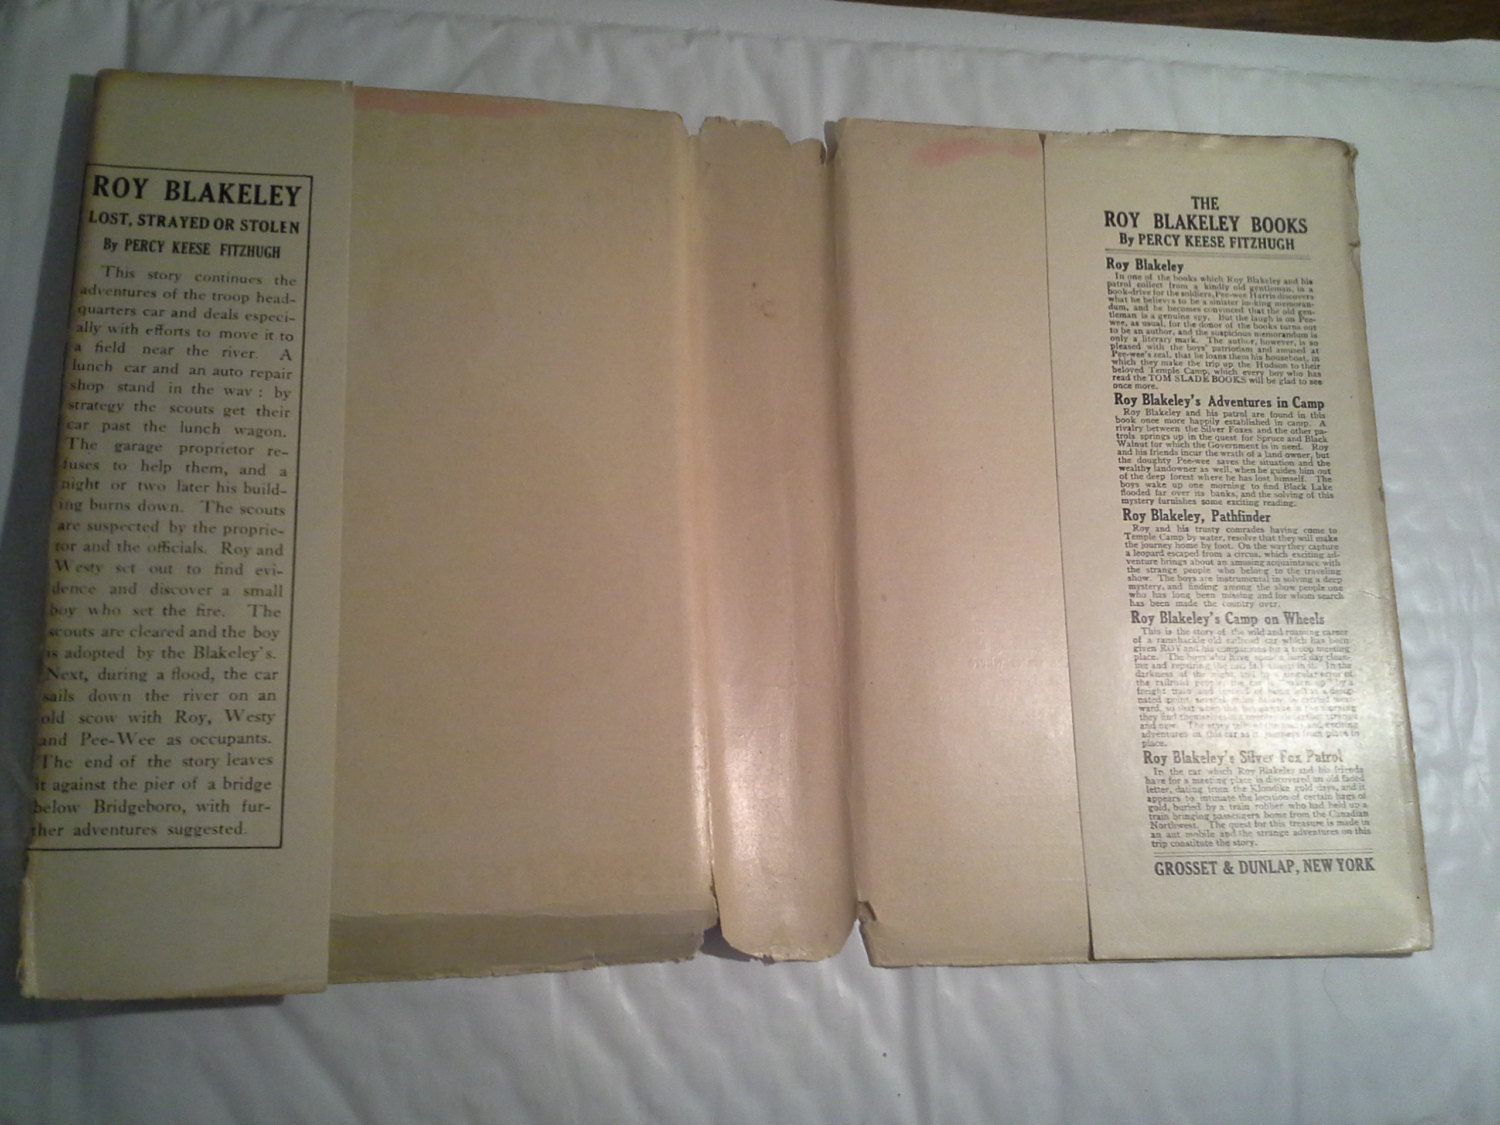 Roy Blakeley  Lost,Strayed or Stolen  by Percy Reese Fitzhugh  1921  Grosset & D